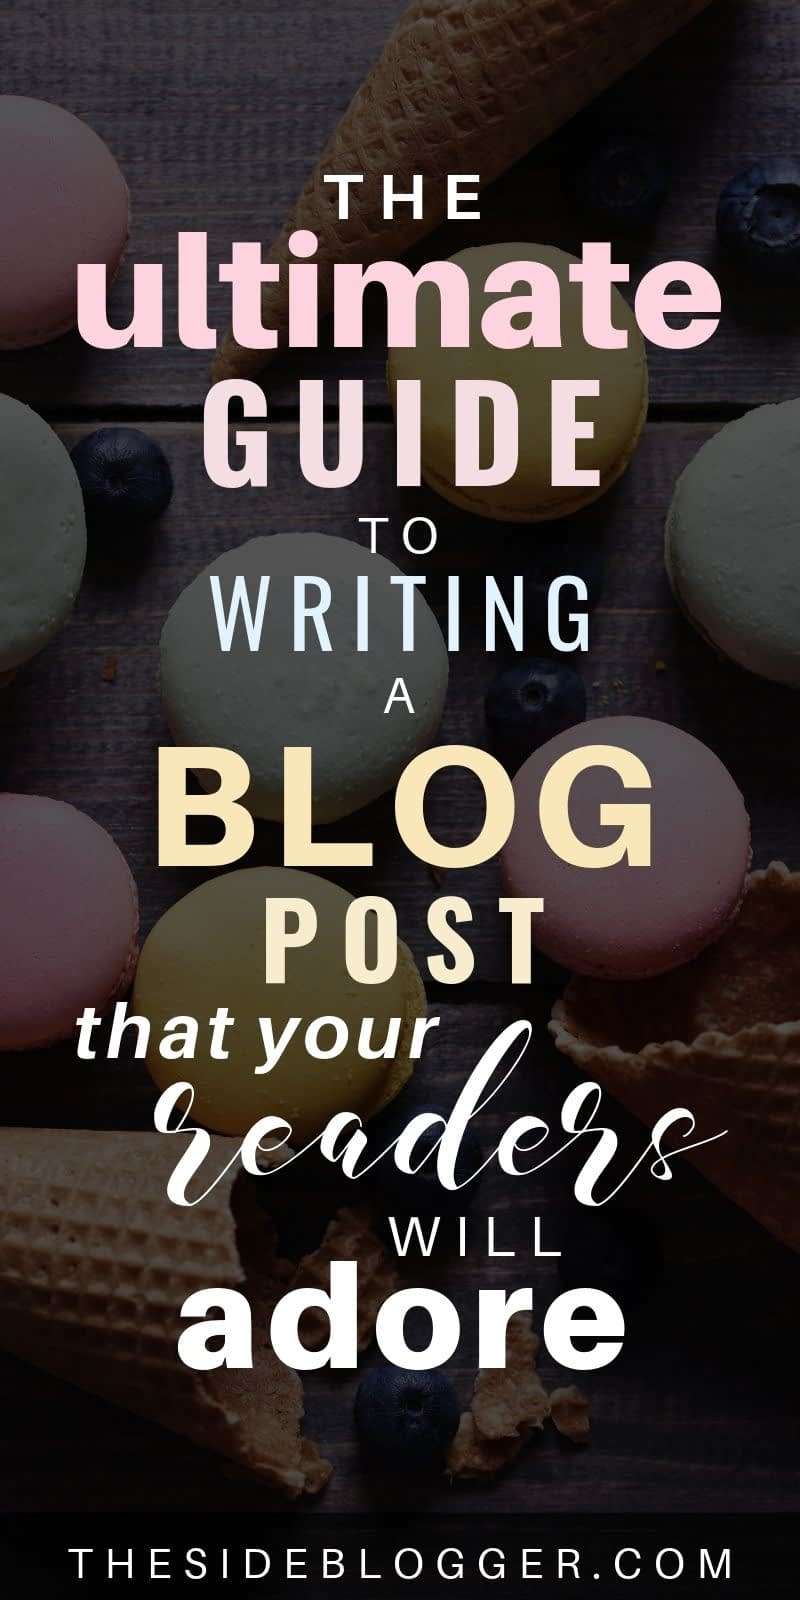 The ultimate guide you'll ever need for writing a blog post that your readers will adore and will come back to your blog for more. It'll also convert your audience into subscribers and buyers. learn how to write a blog post the right way, from research to publish to post publish tasks. #blogging #writing #blogpost #bloggers #startablog #beginners #bloggingresources #bloggingtips #bloggingforbeginners